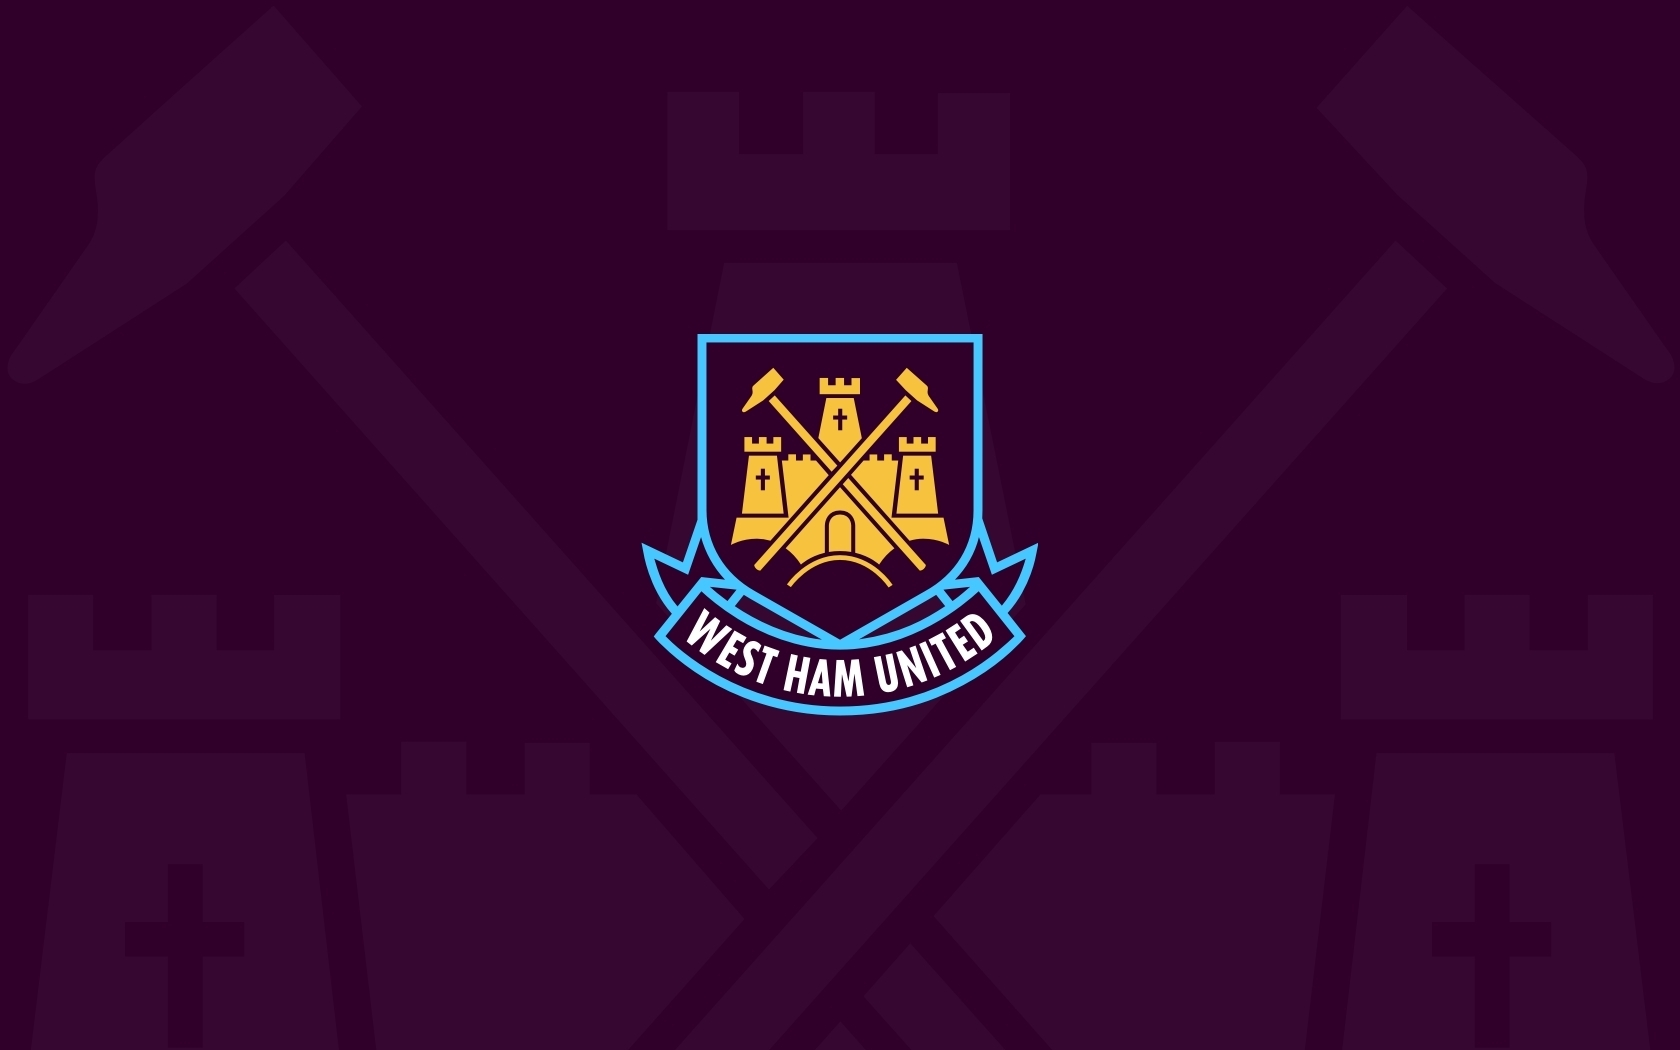 west ham united wallpaper | 1680x1050 | id:35231 - wallpapervortex